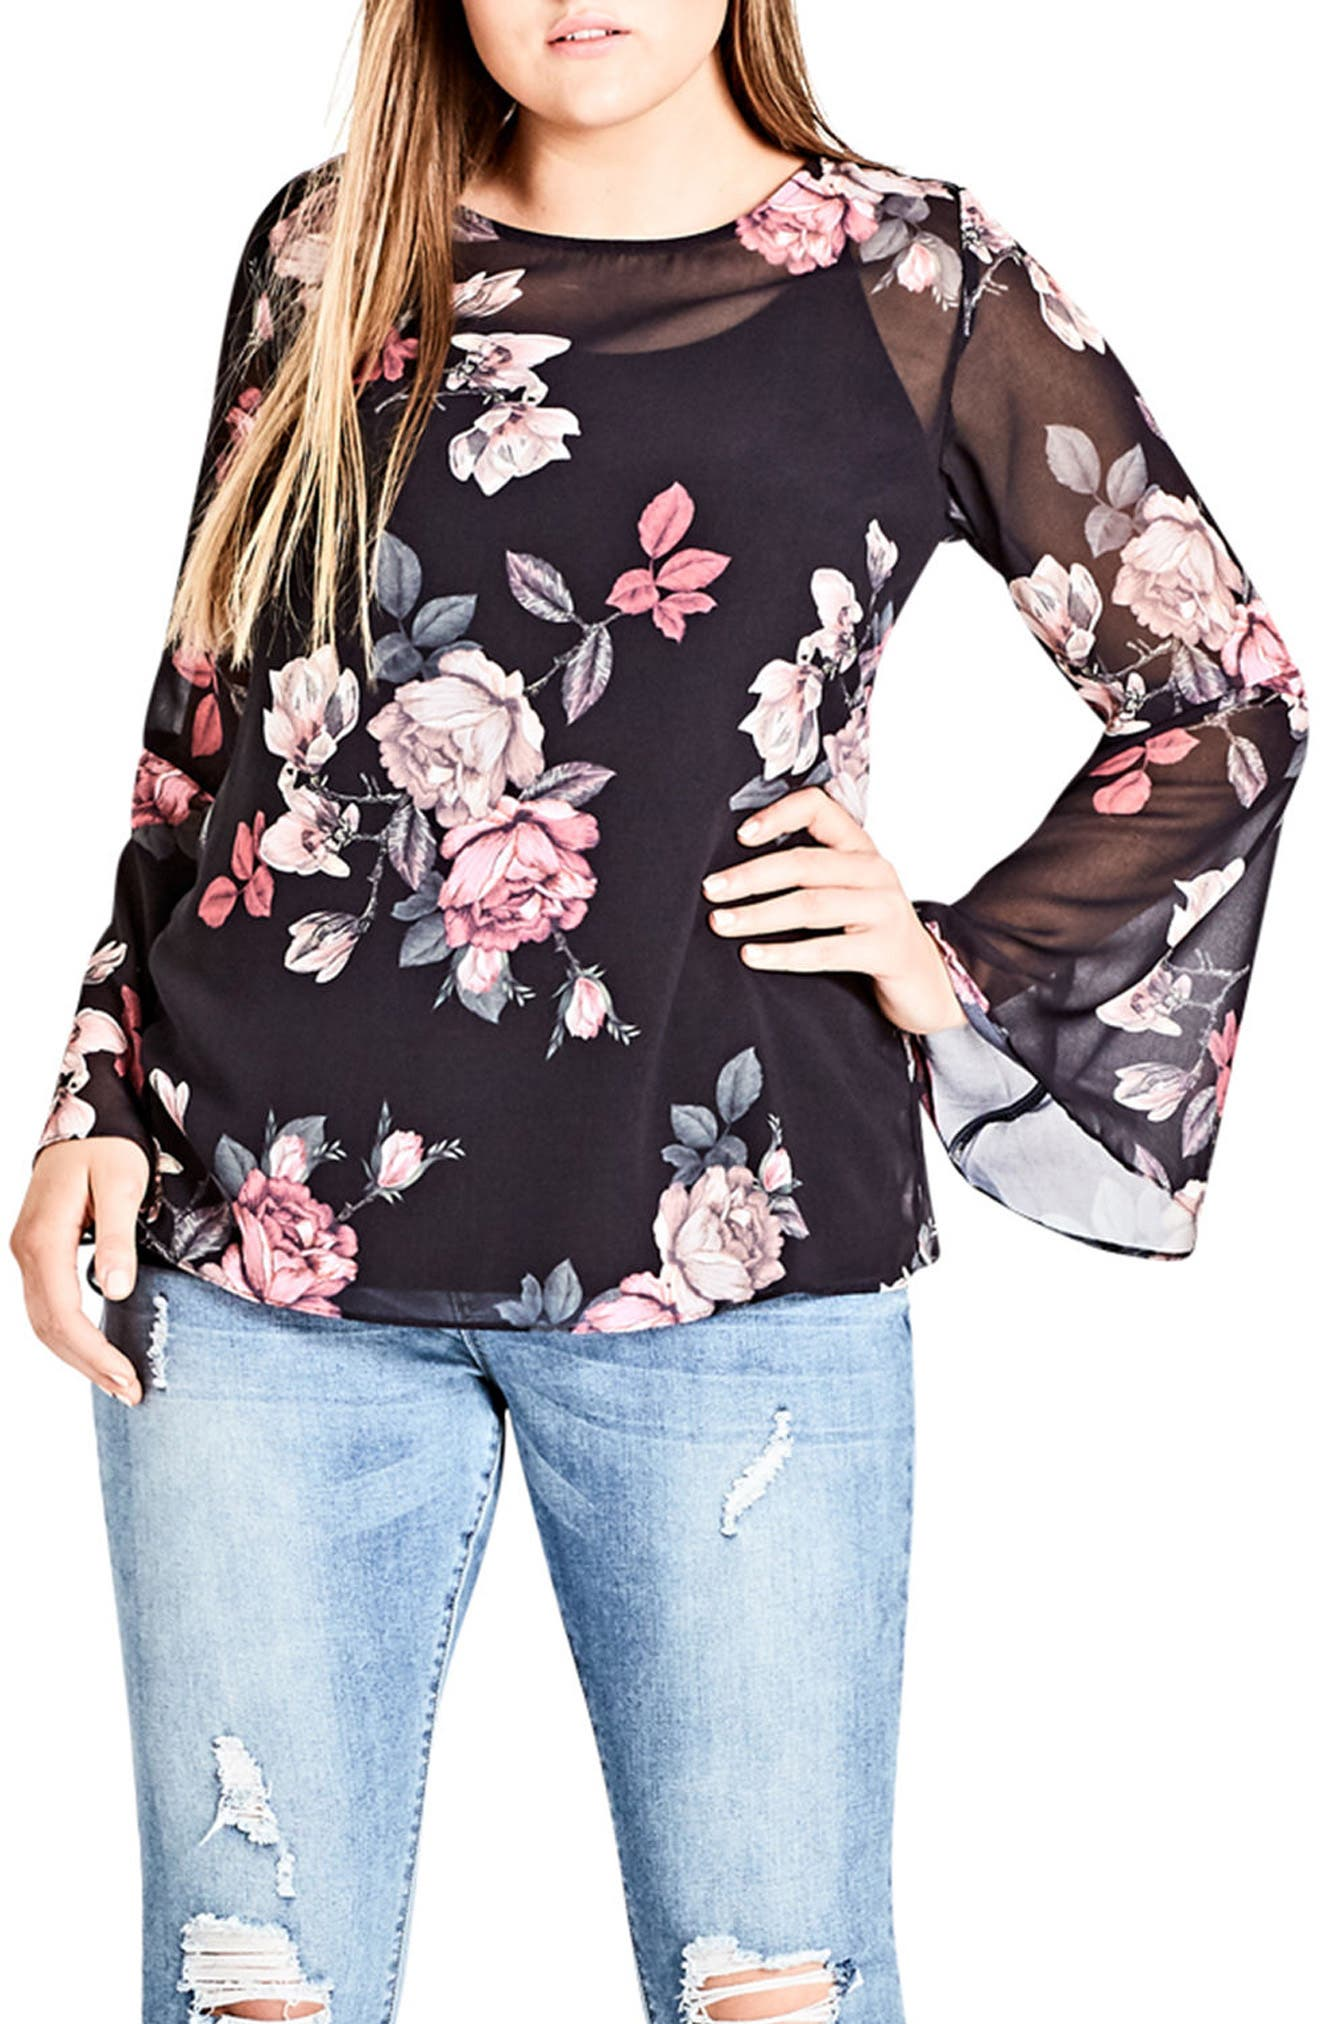 Alternate Image 1 Selected - City Chic Mirror Rose Top (Plus Size)